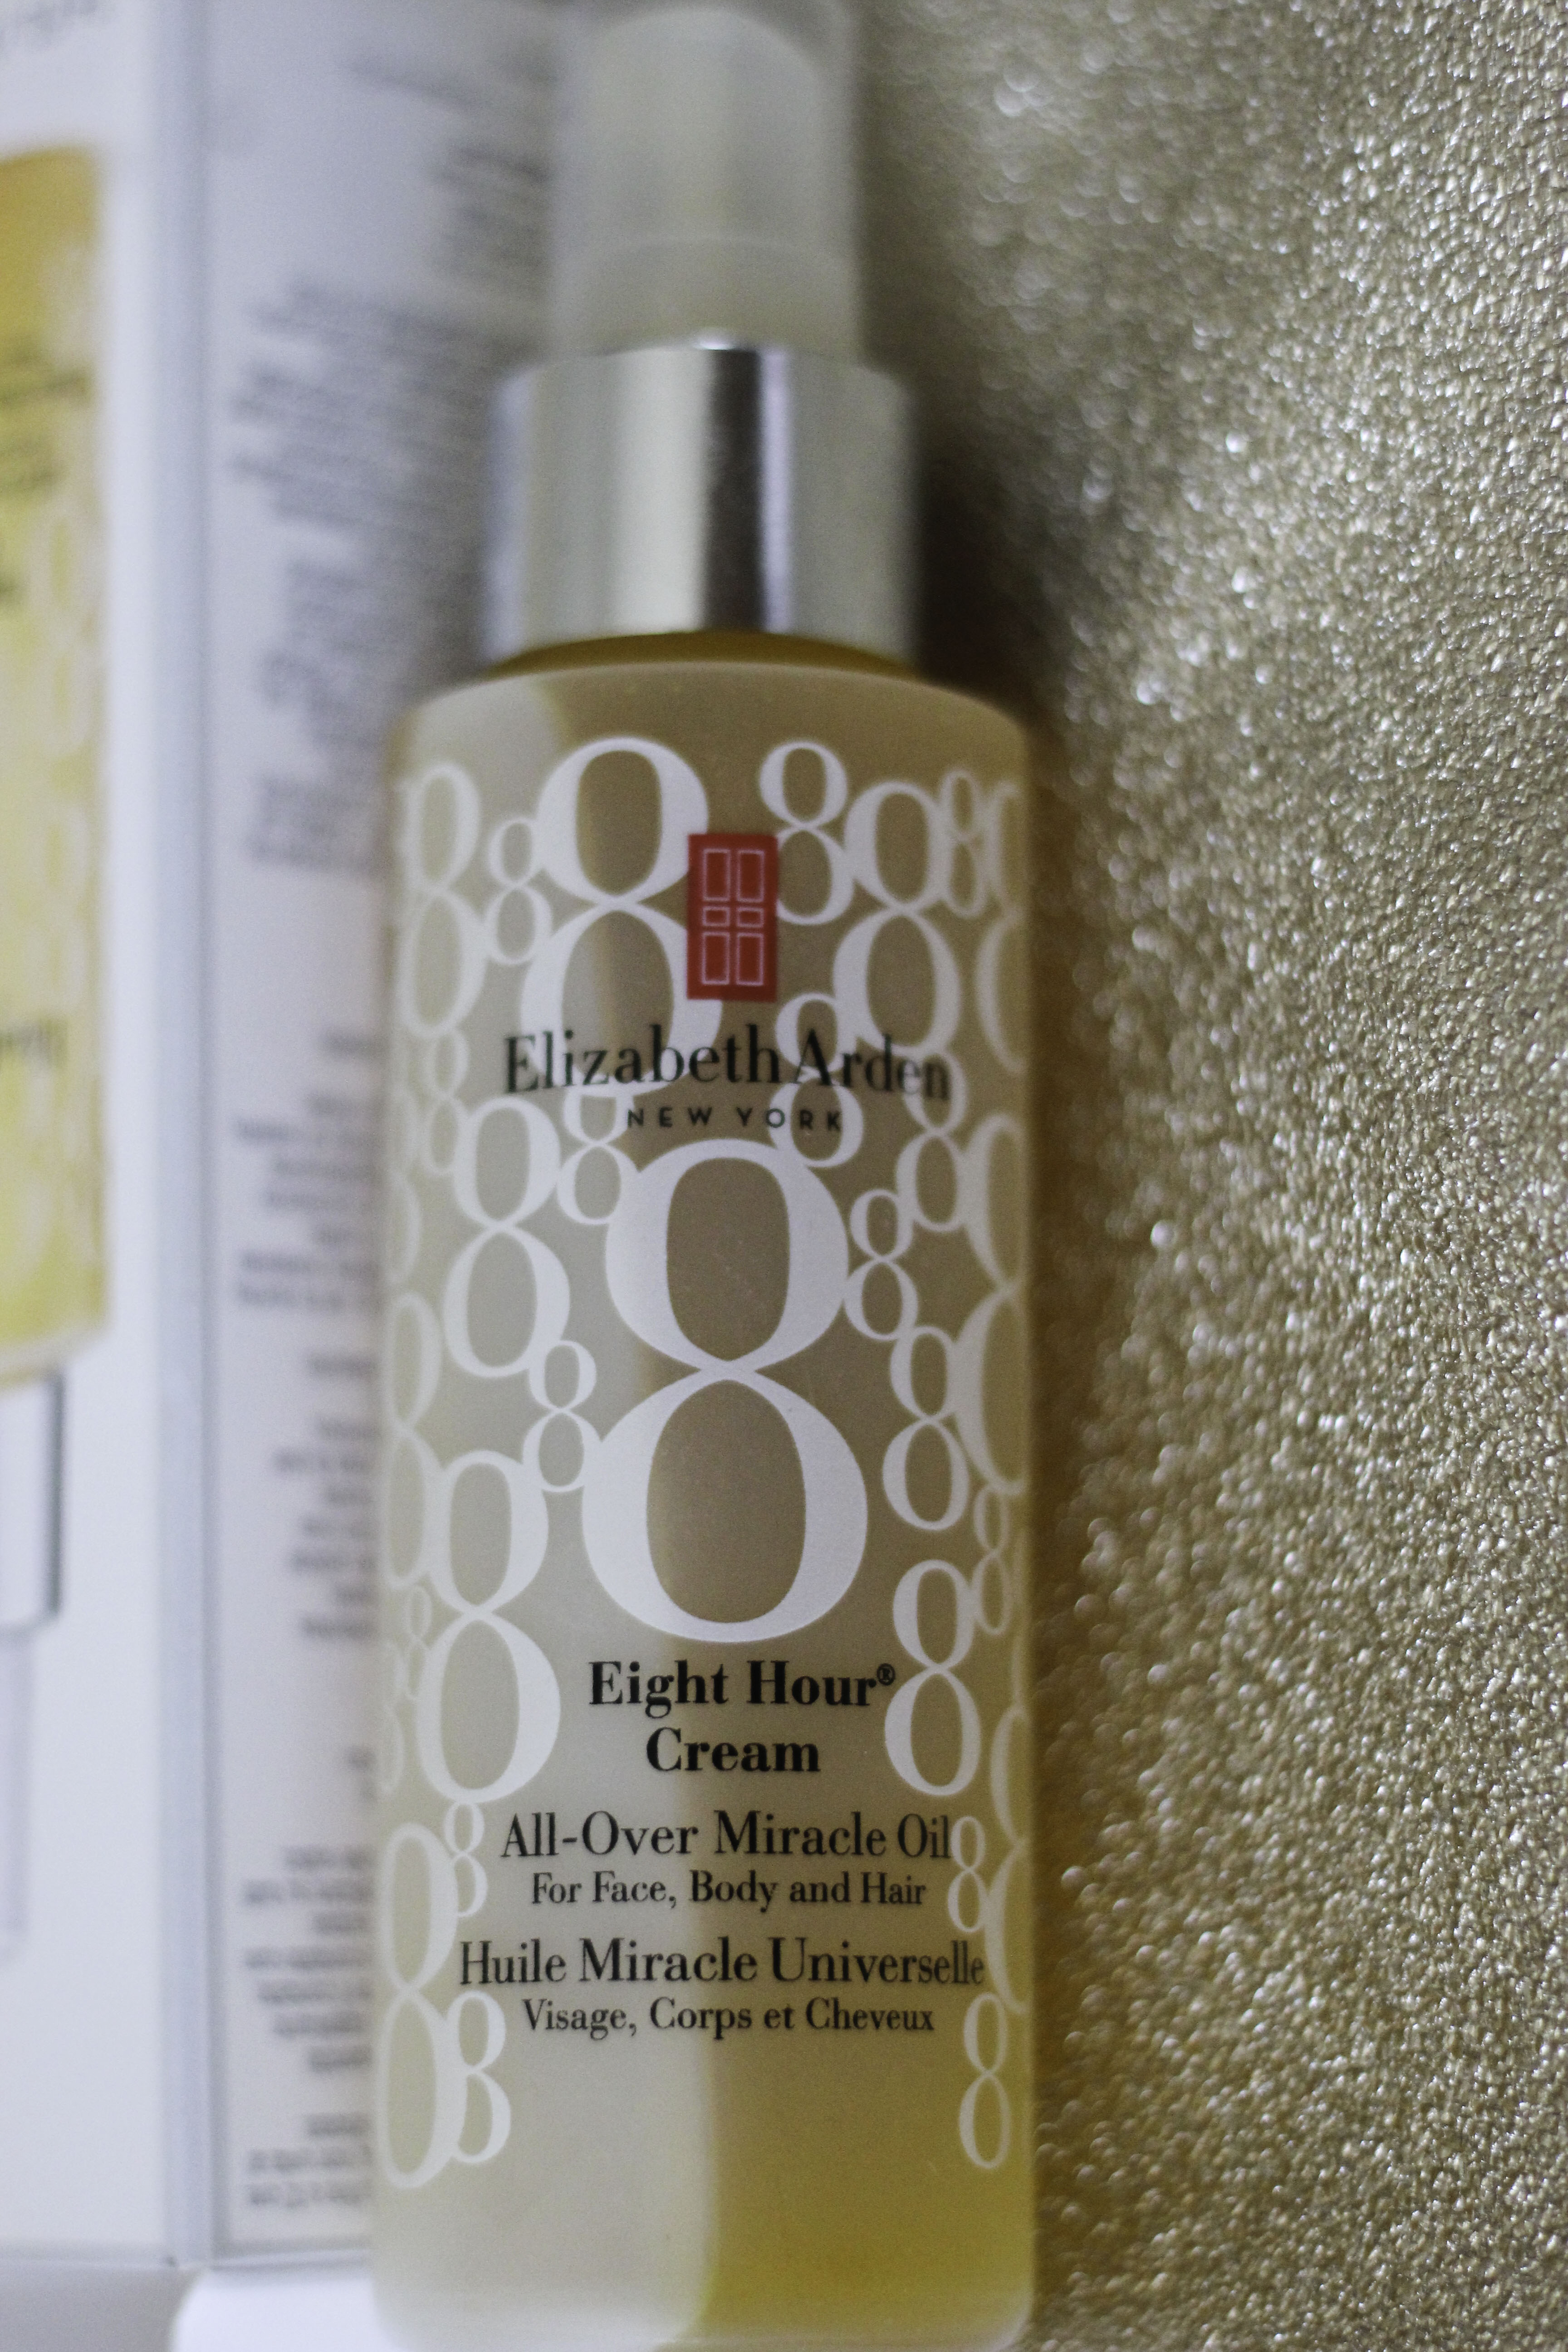 elizabeth arden 8 hour cream miracle oil reviews